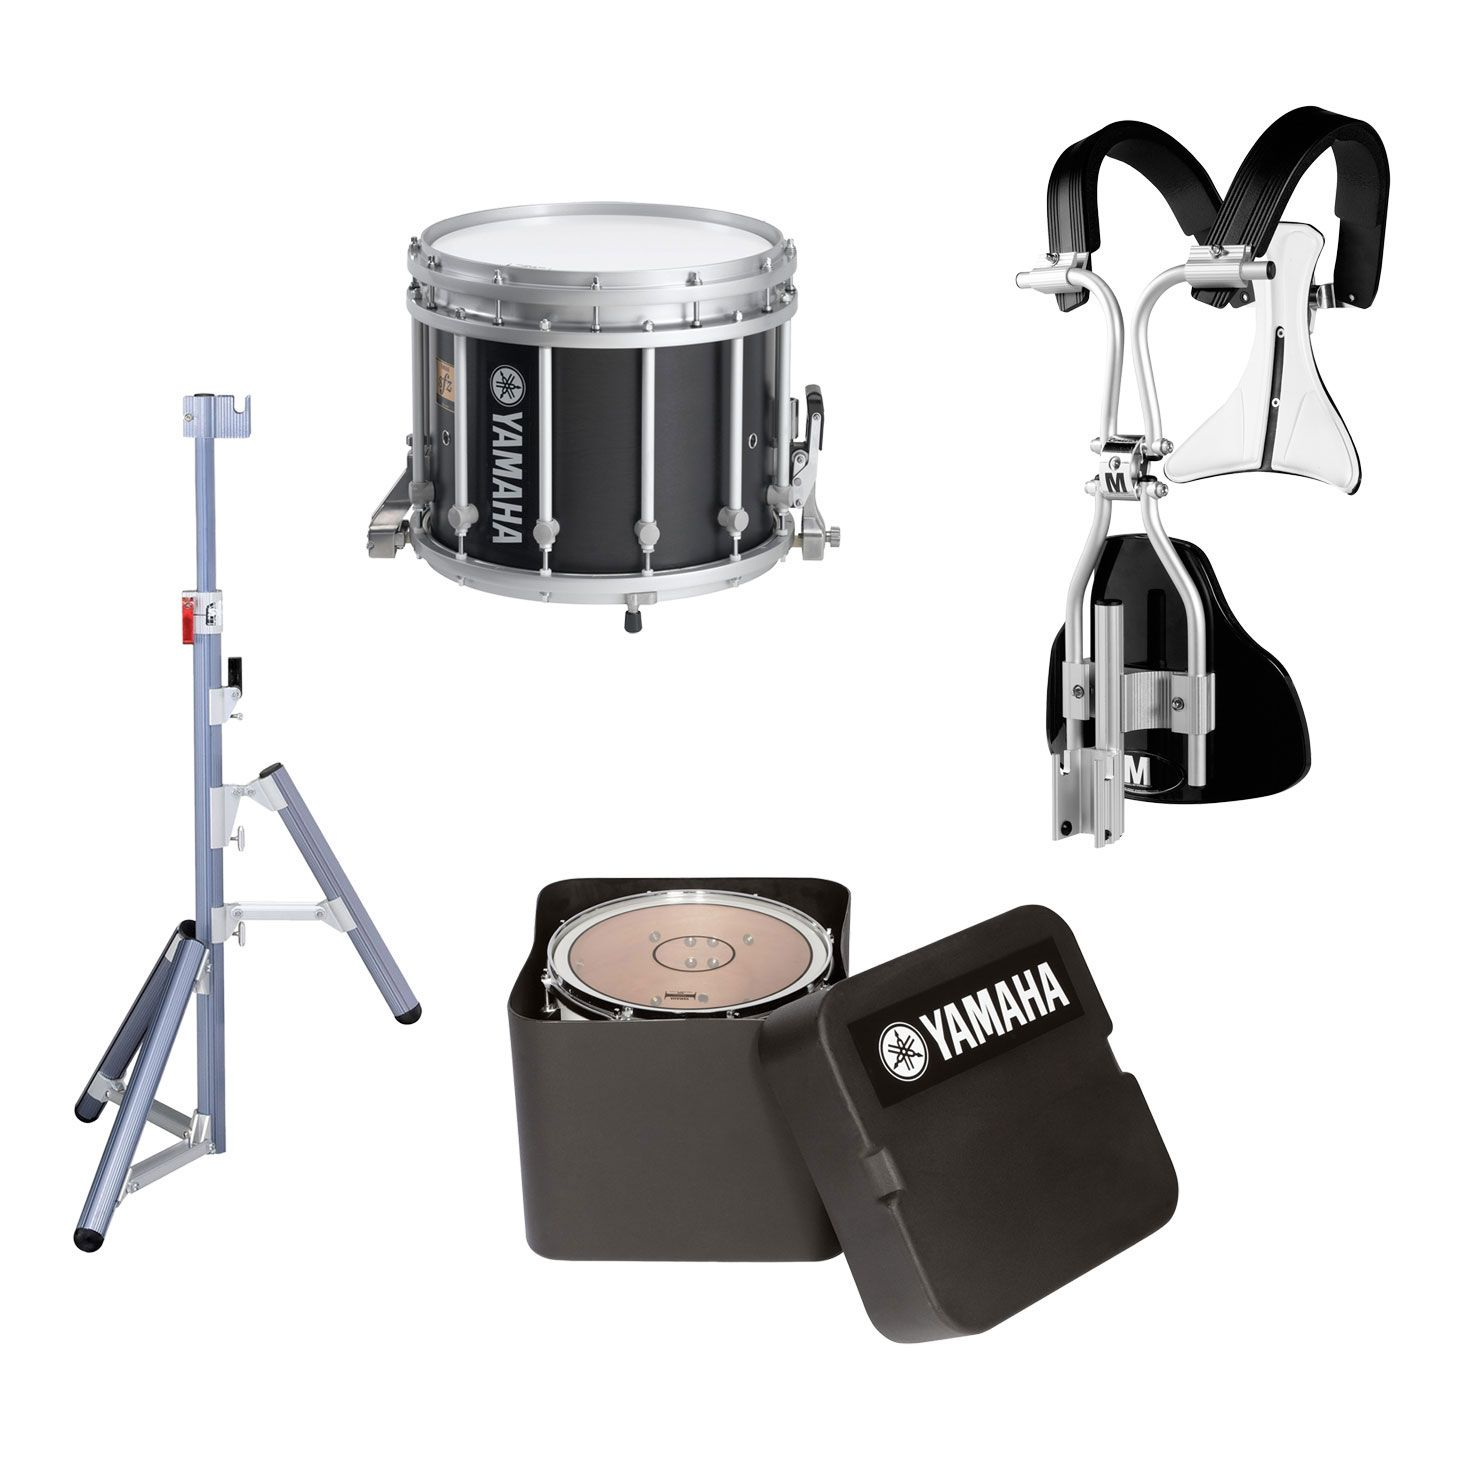 Yamaha 14 X 12 9300 Sfz Marching Snare Drum Chrome Hardware Monoposto Carrier Case And Stand Marching Snare Drum Marching Snare Snare Drum